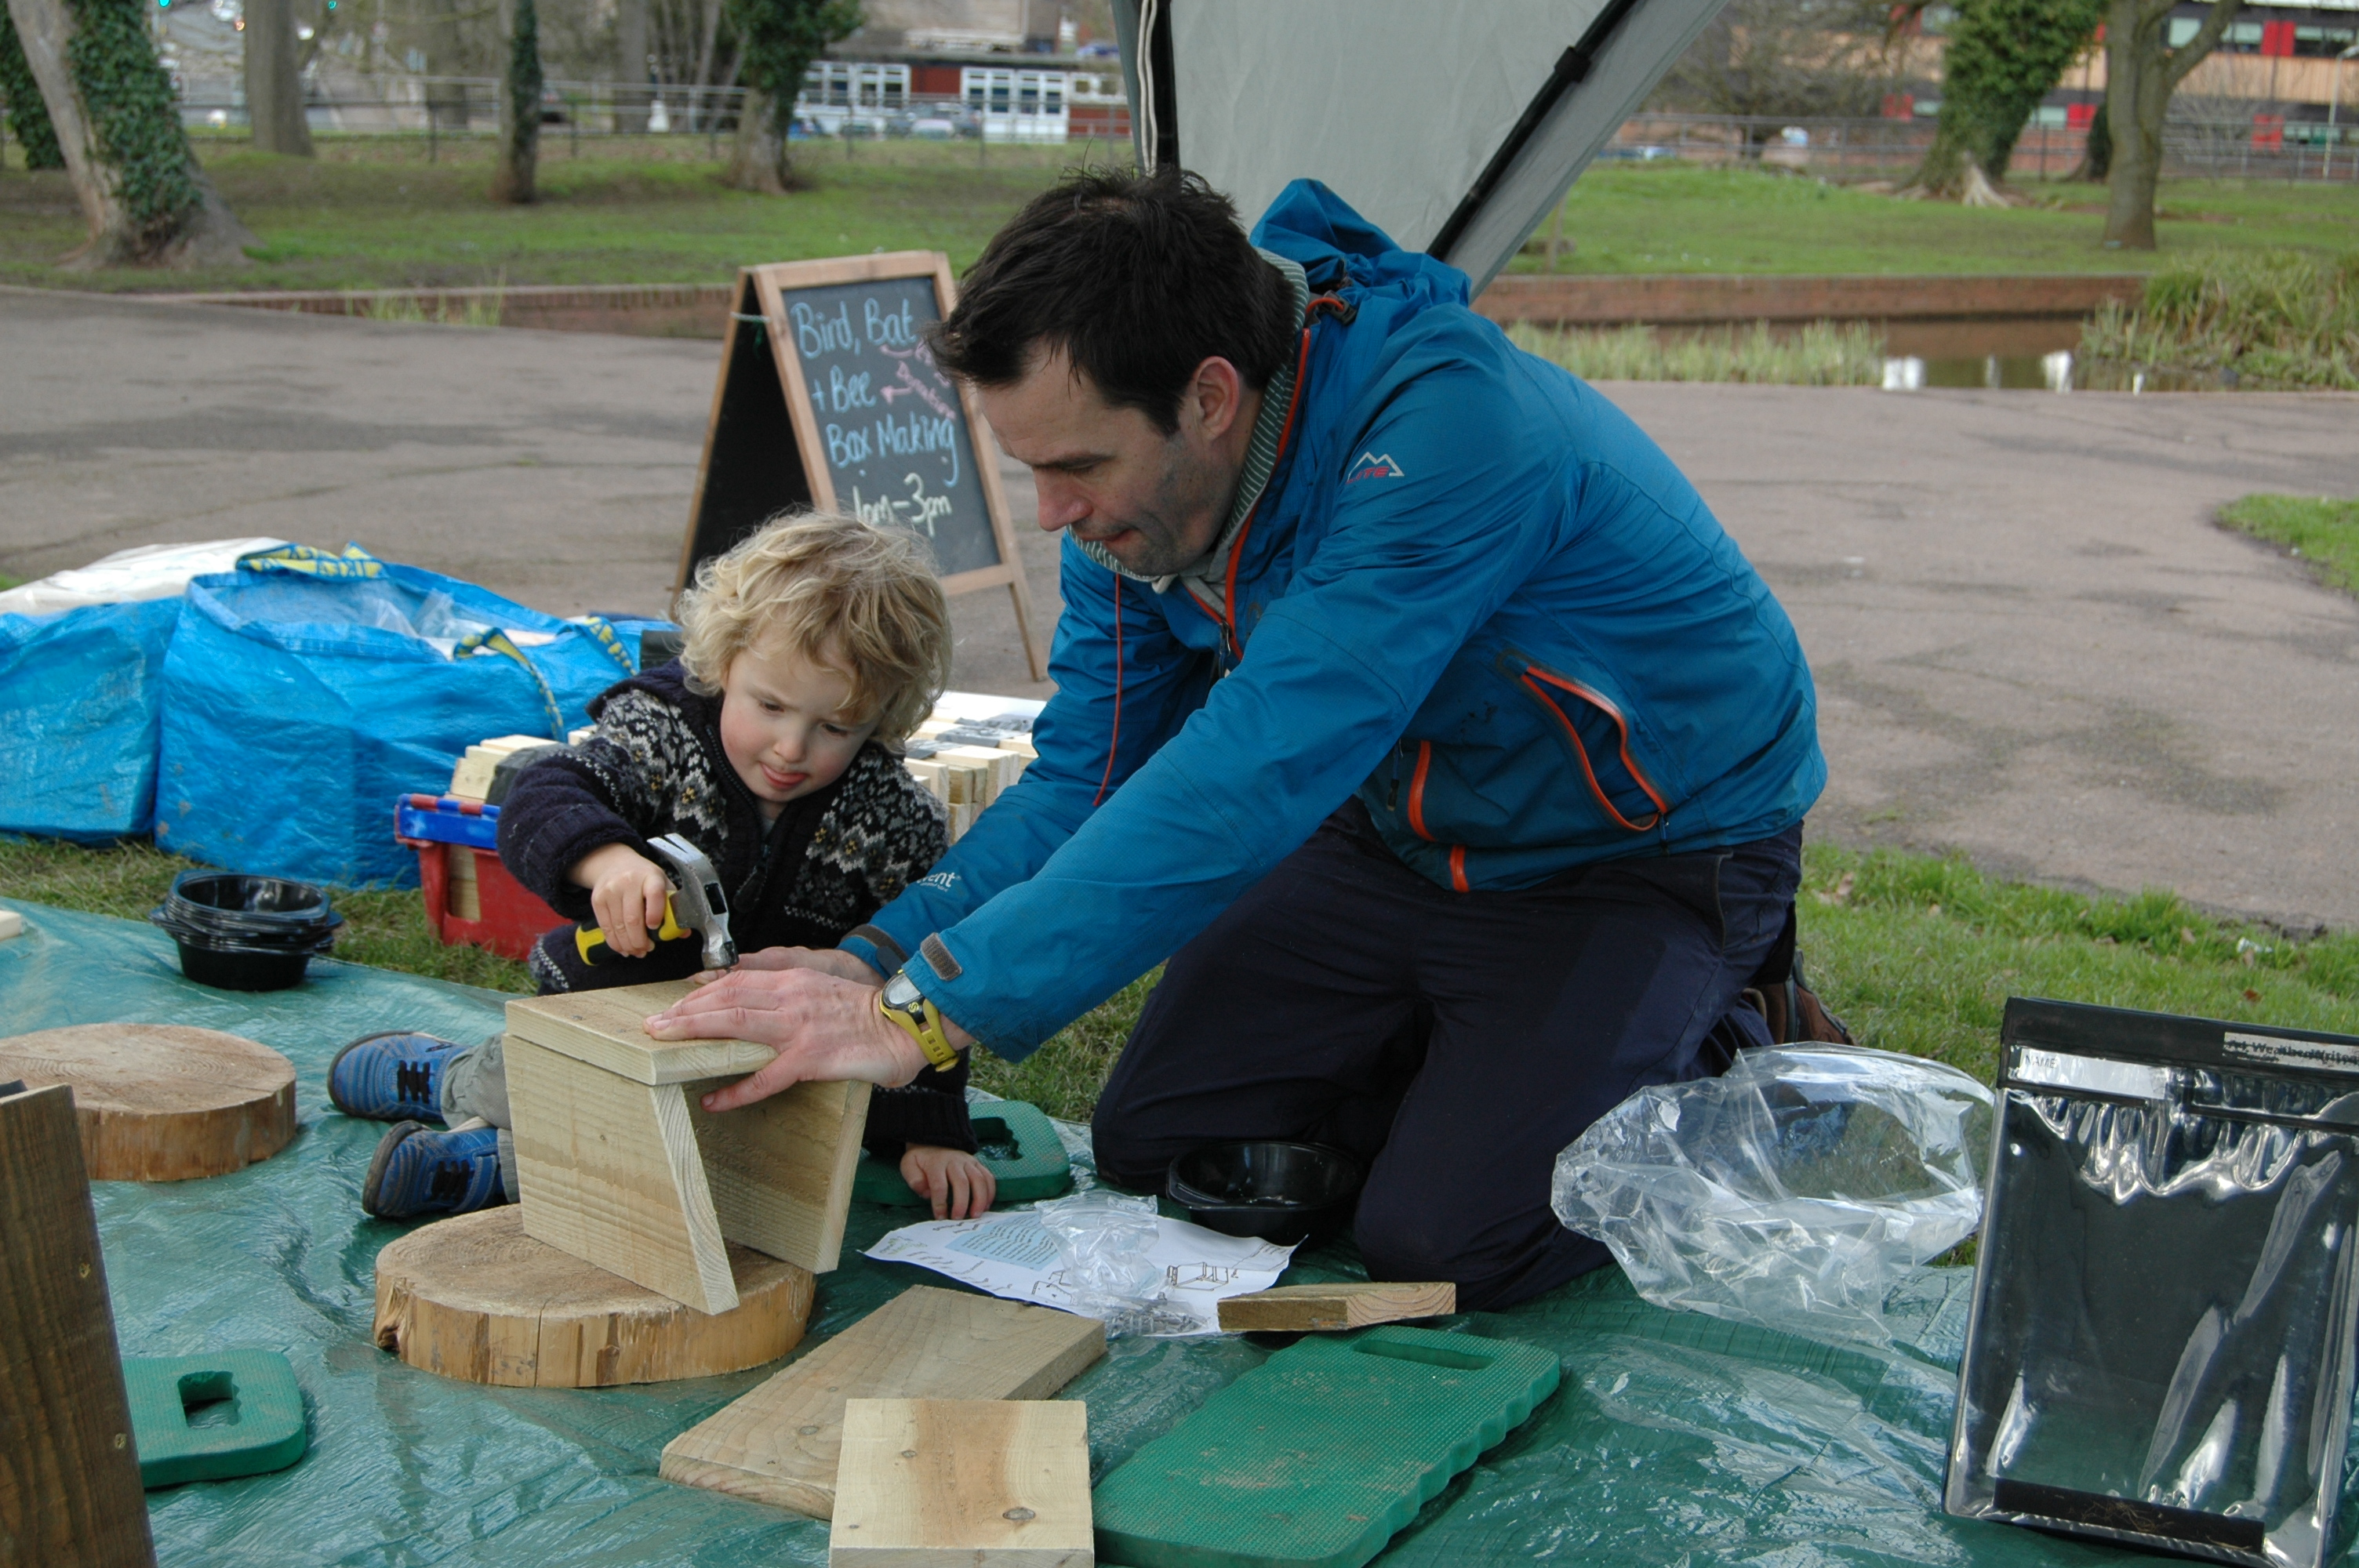 Nest Box Building at Seaton Wetlands 11am to 12pm (Tues 18 Feb)